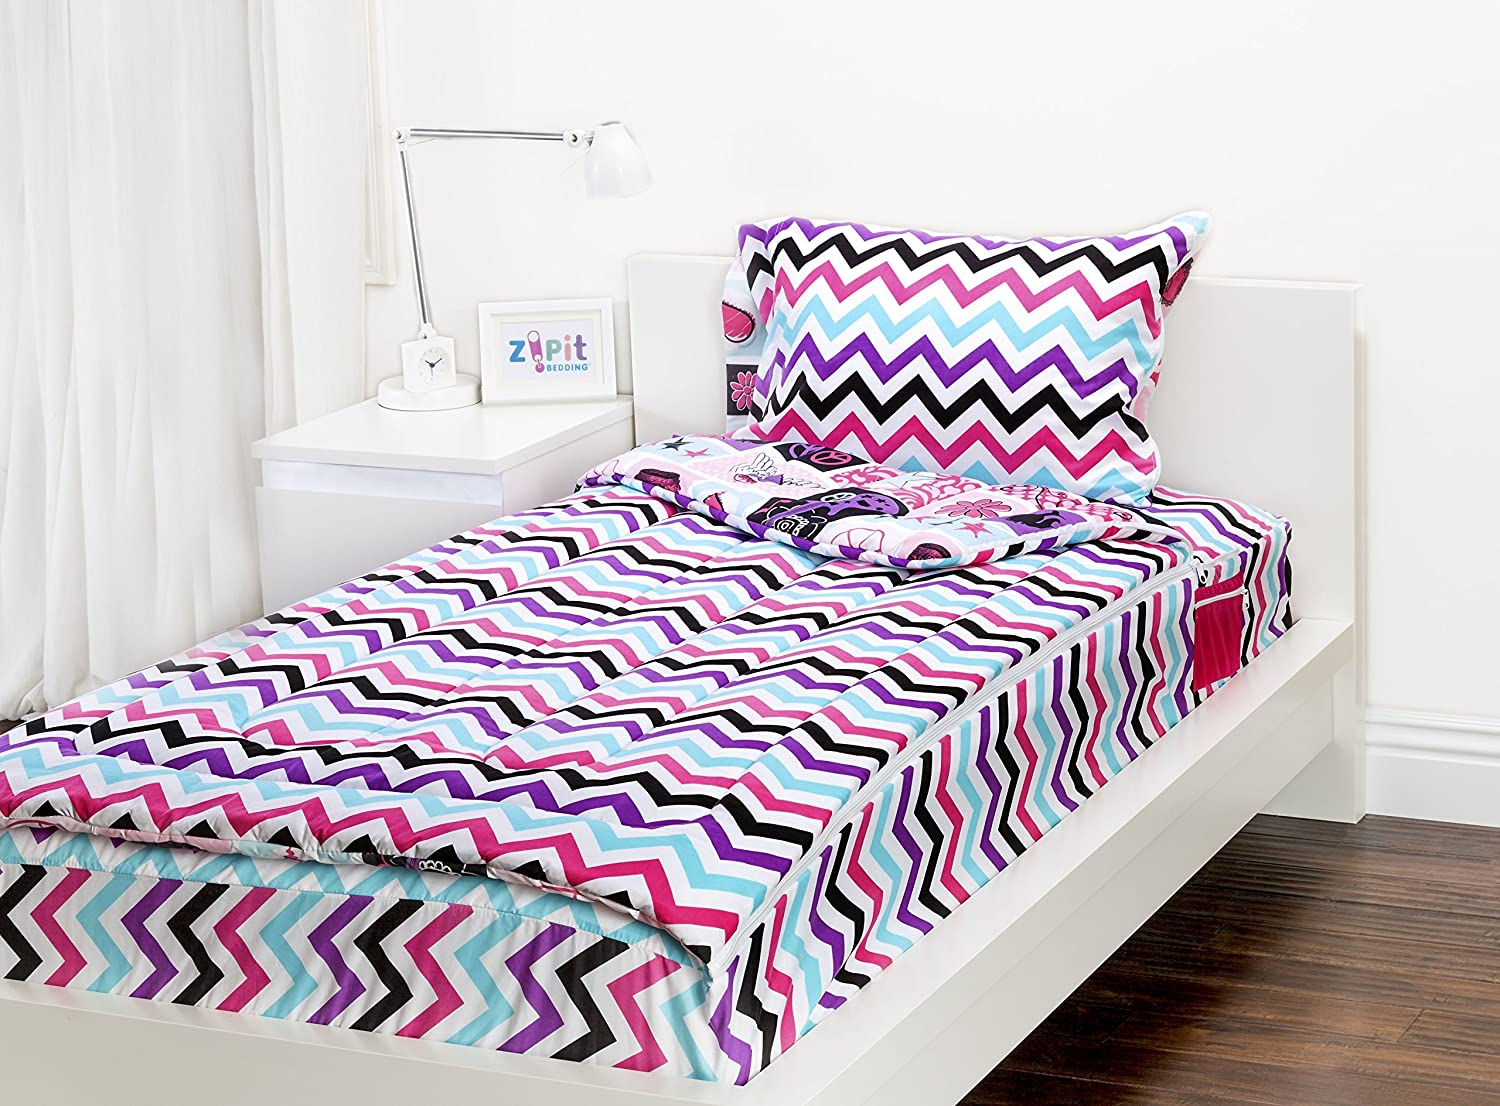 Zipit Bedding Set, Rock Princess - Twin by Zipit Bedding: Amazon.de ...